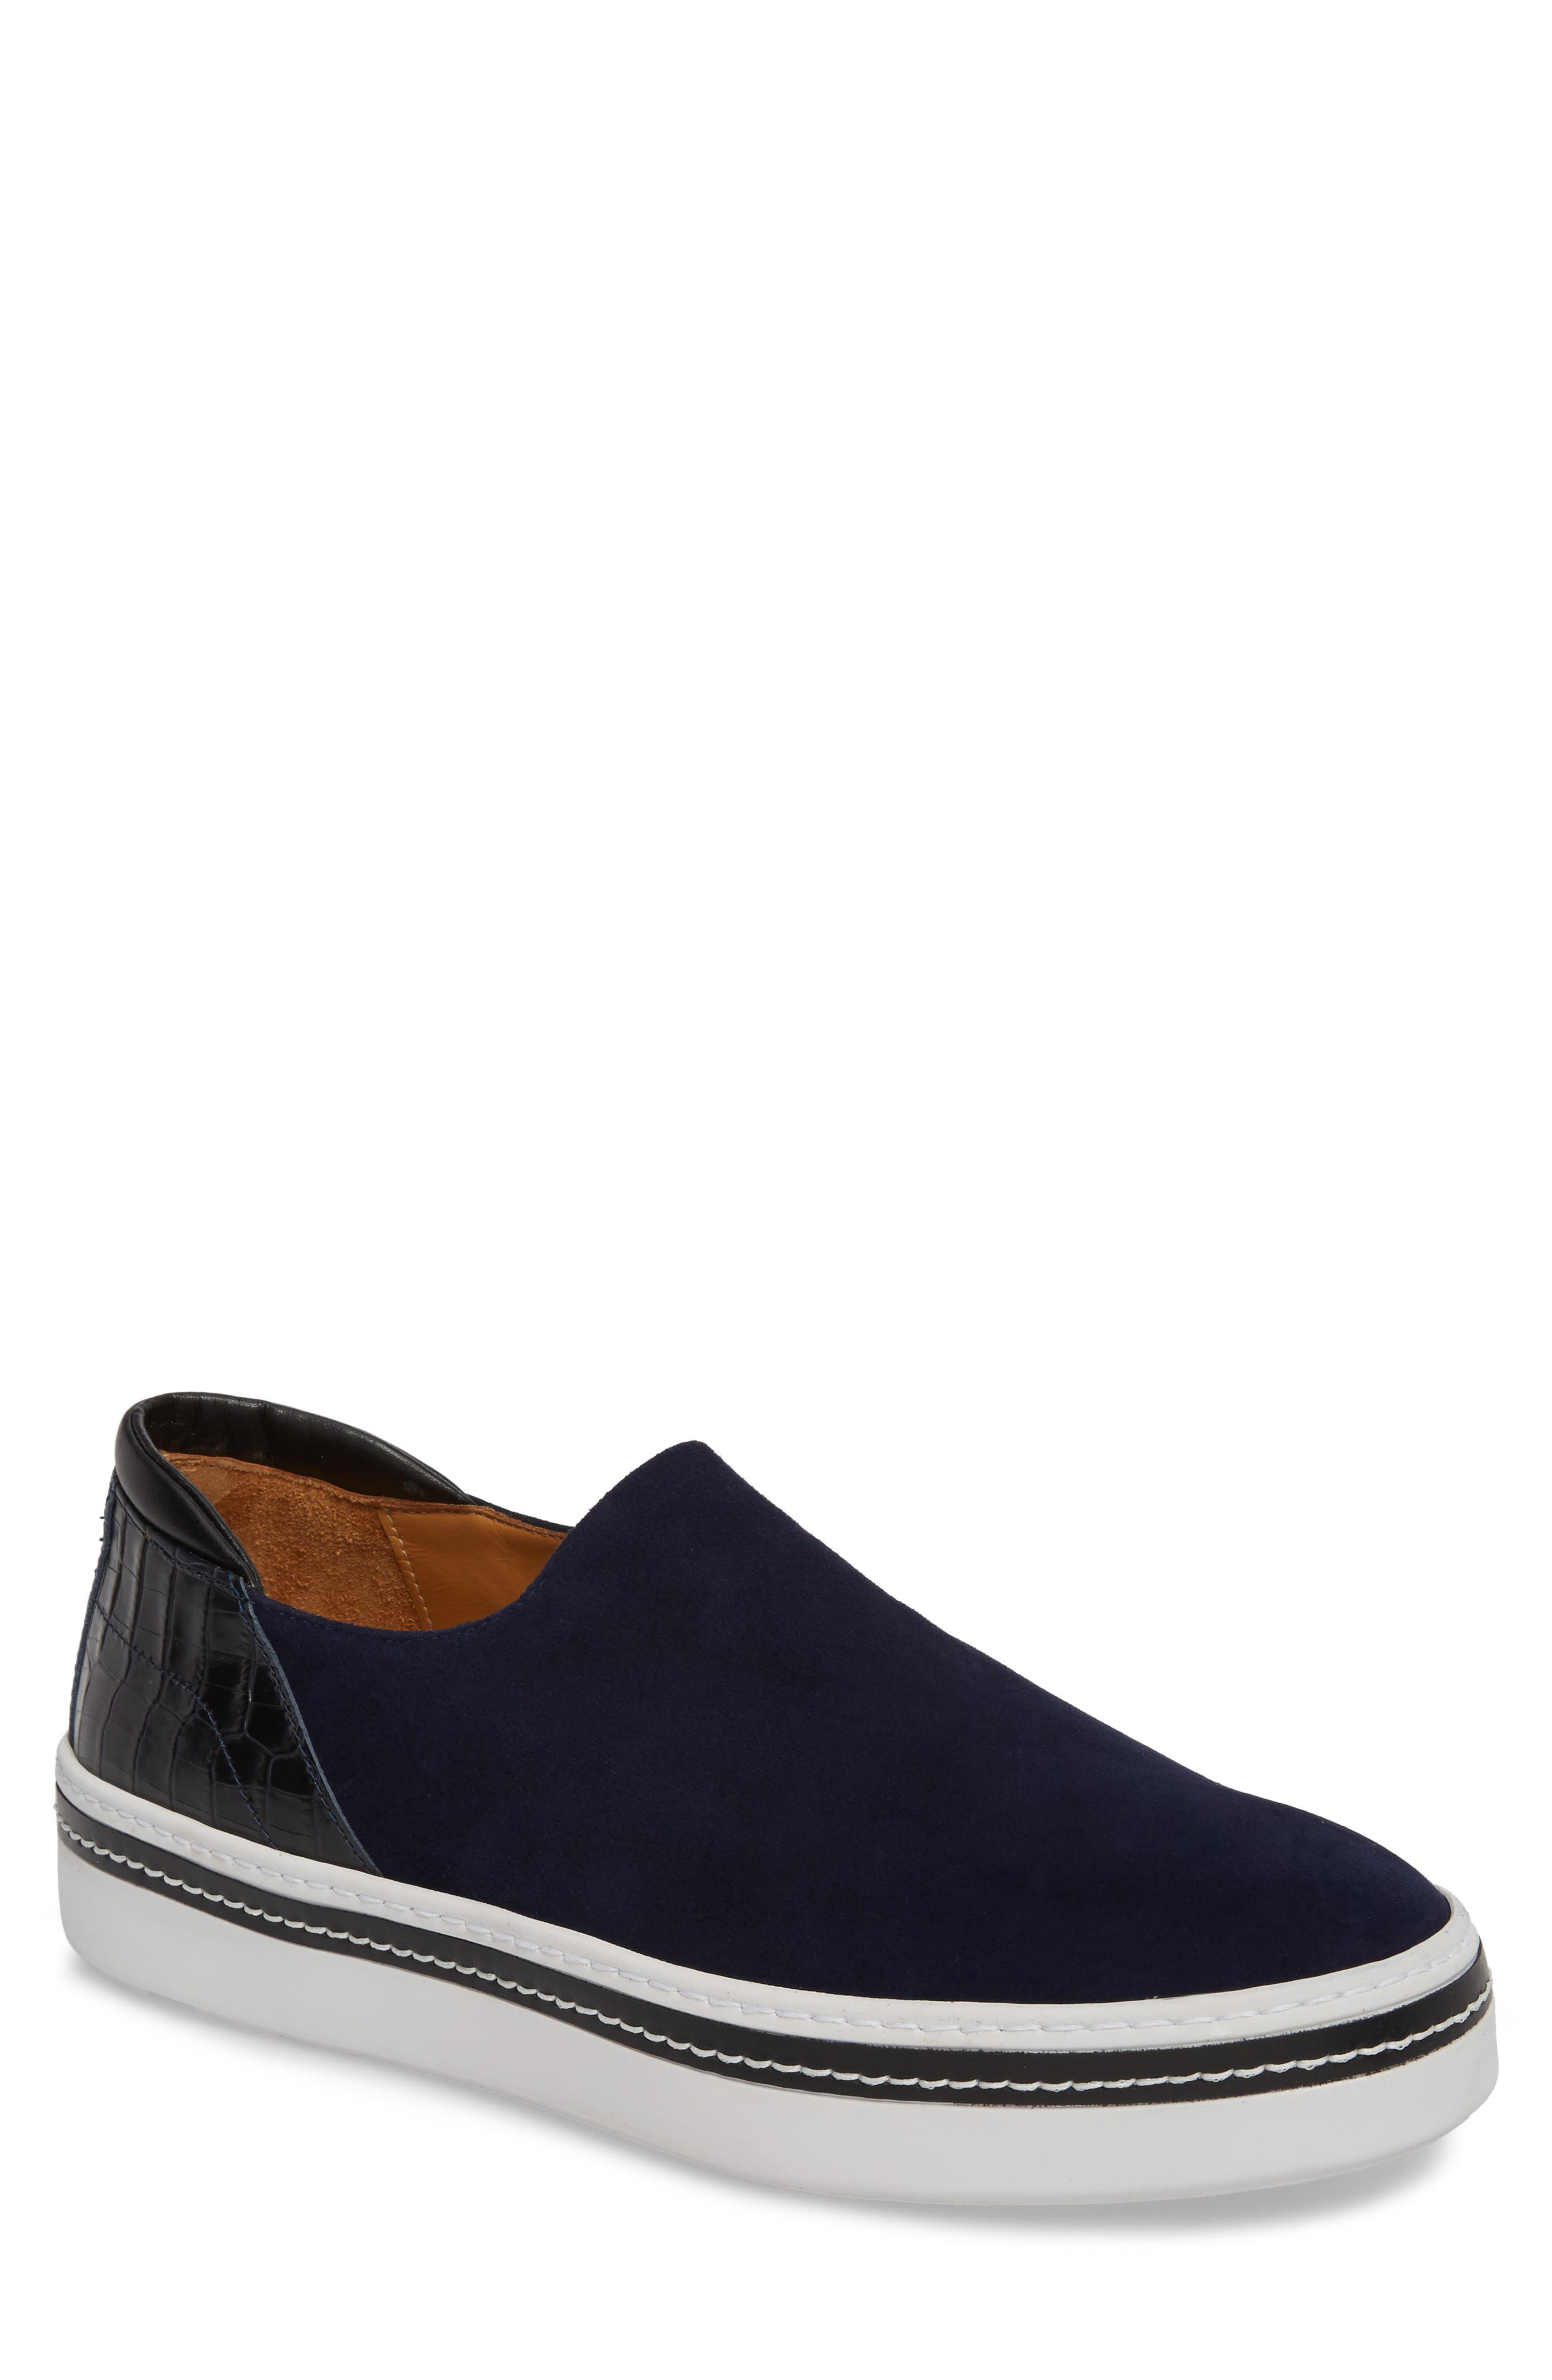 Stan Slip-On Sneaker,                         Main,                         color, Midnight Blue Suede